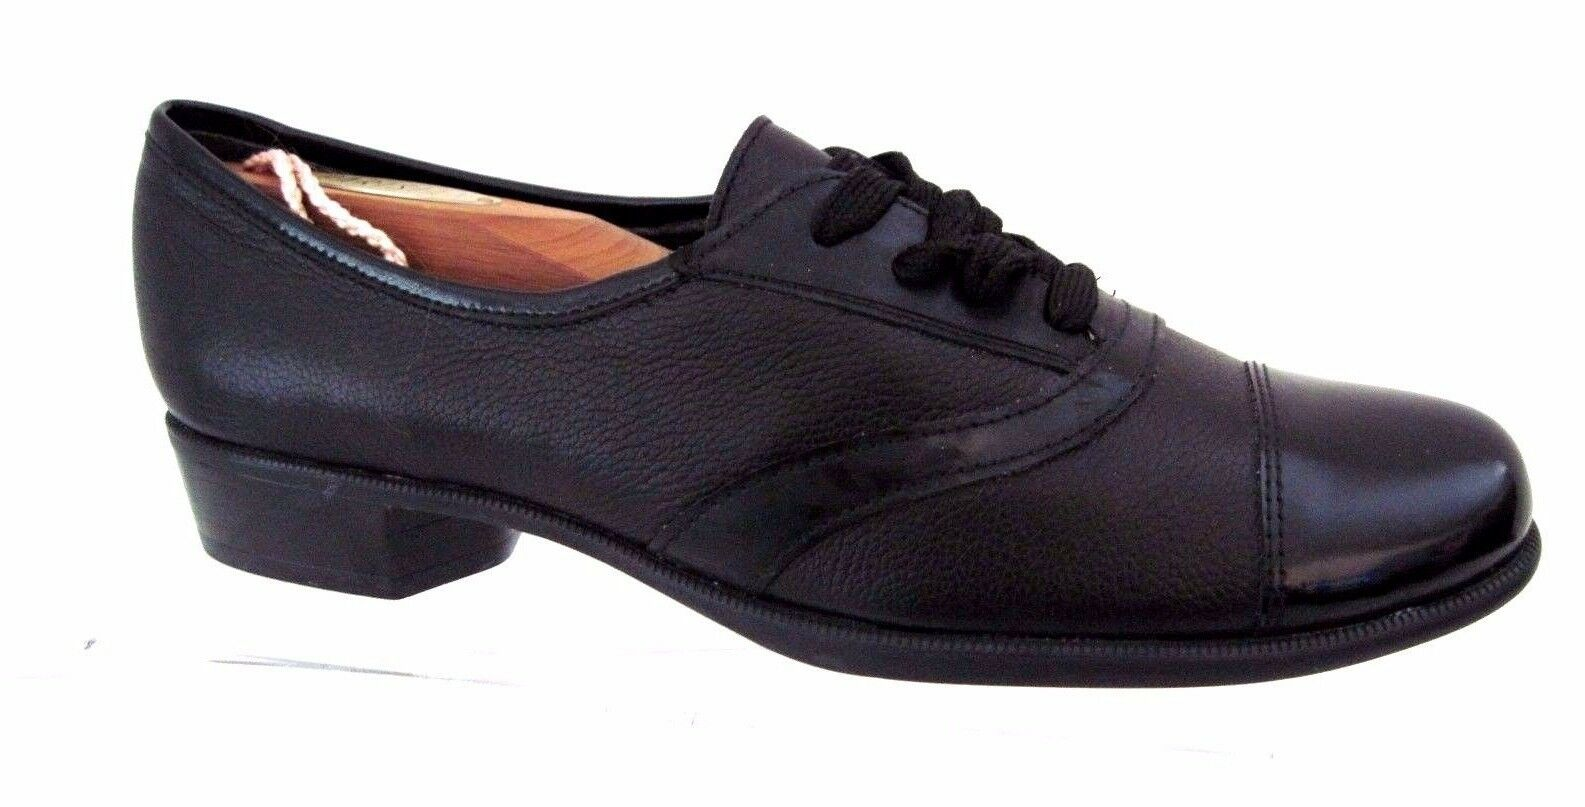 MUNRO American Black Leather Cap Toe Oxfords Size 7 SS USA